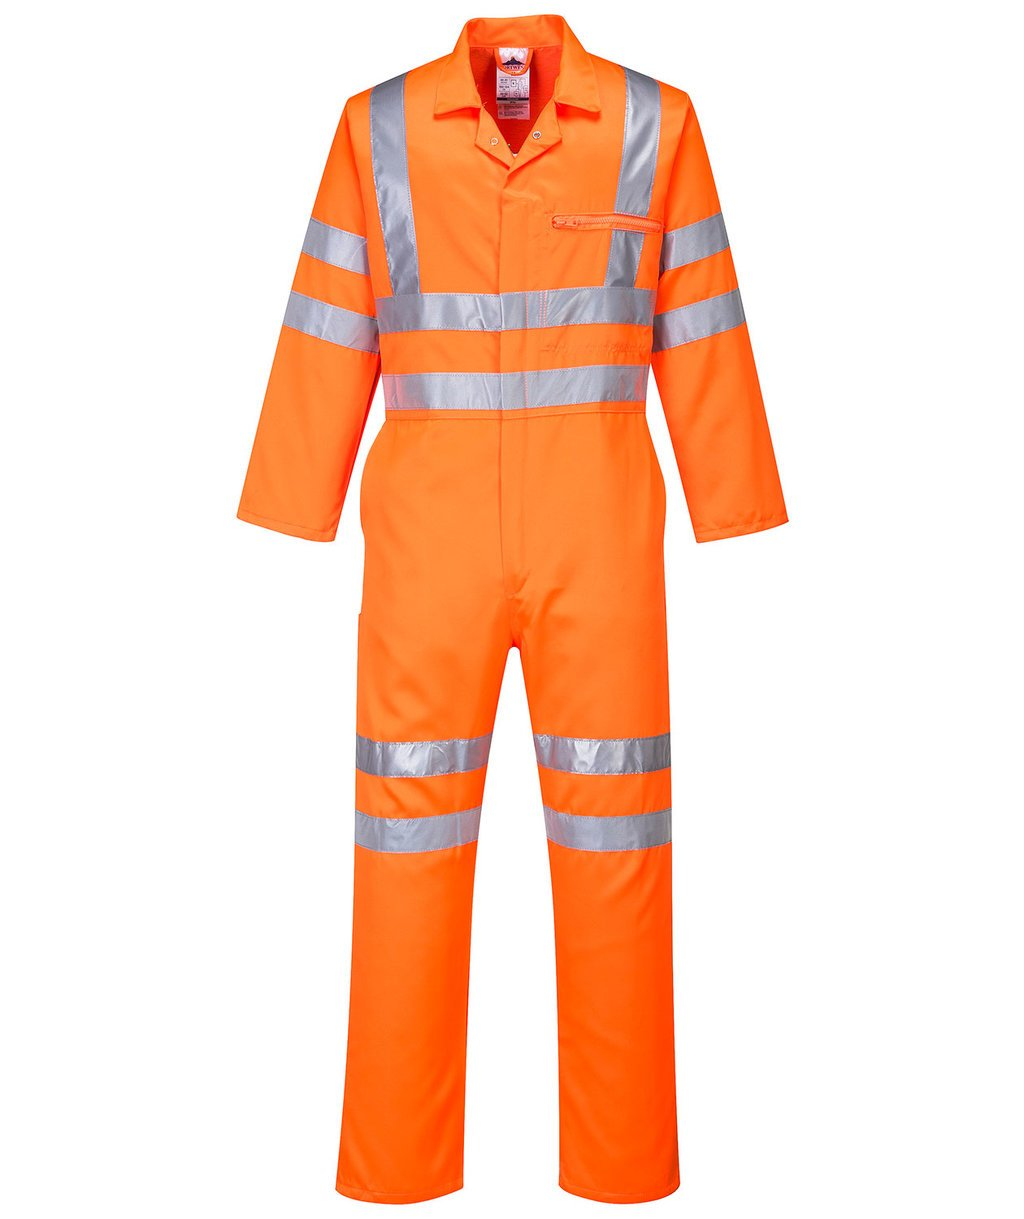 Portwest coverall, Hi-Vis Orange